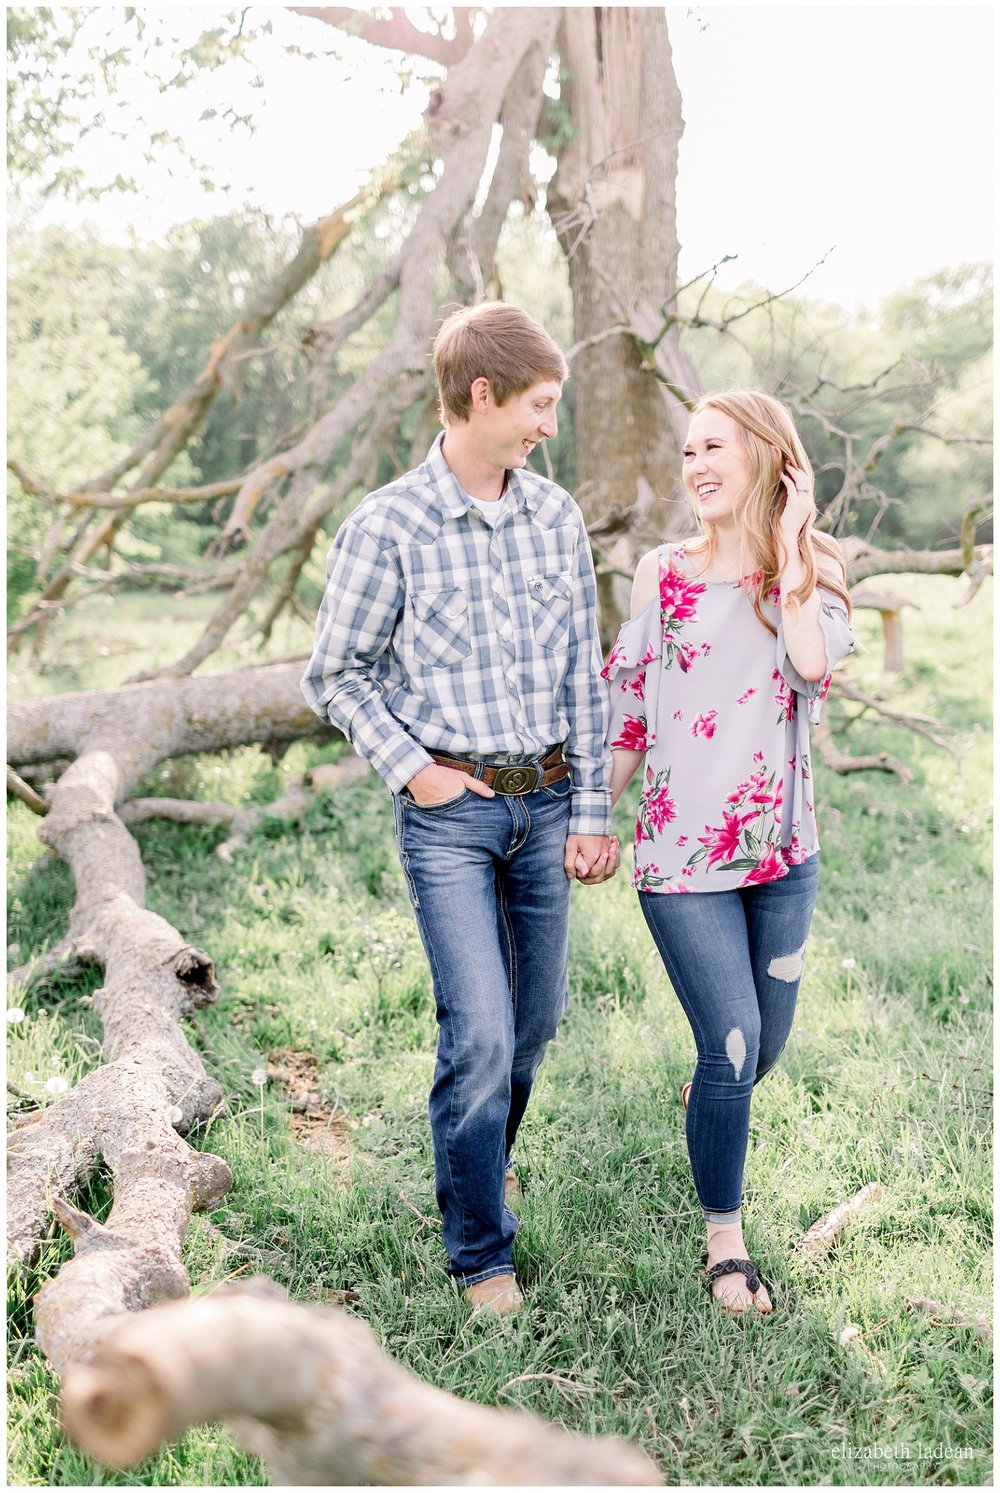 KC-Engagement-photographer-Farm-engagement-T+J-elizabeth-ladean-photography-photo-_7335.jpg